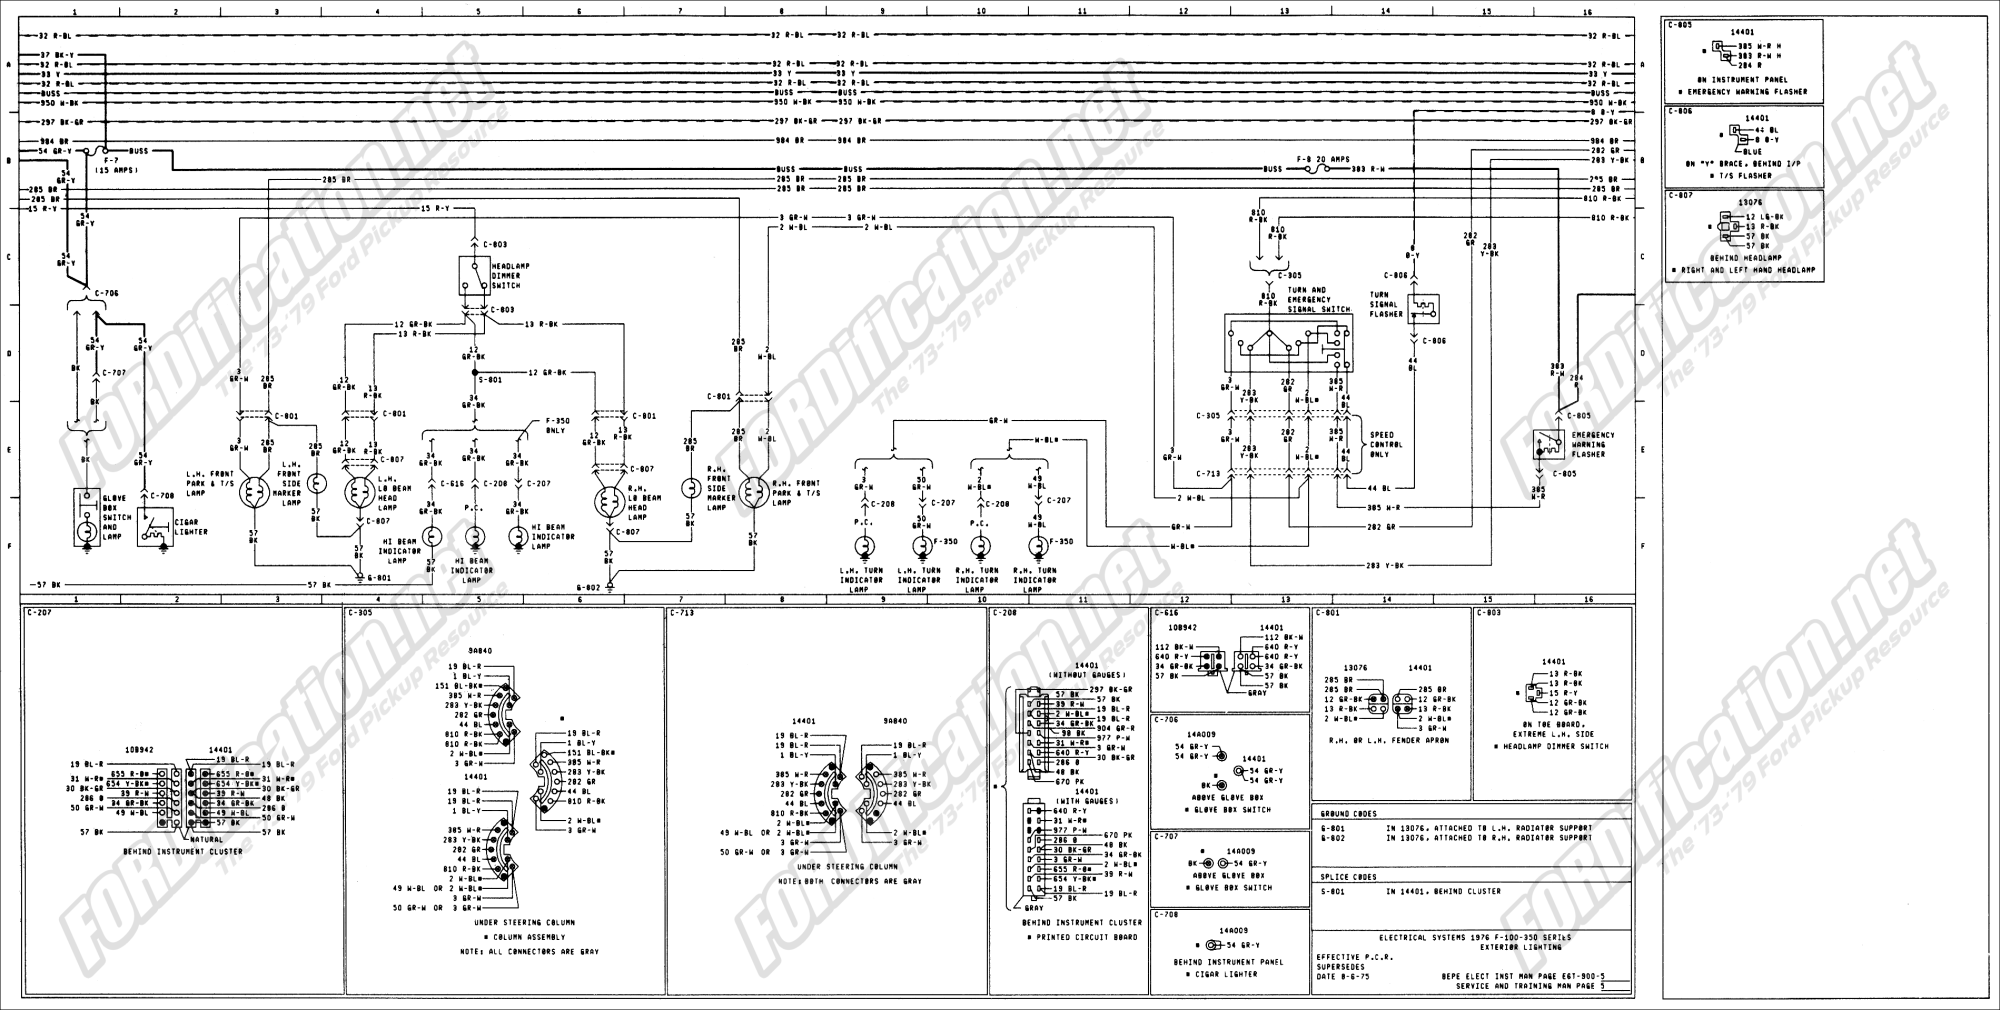 hight resolution of 1973 1979 ford truck wiring diagrams schematics fordification net rh fordification net 1995 jeep cherokee wiring diagram 1995 ford f 150 wiring diagram